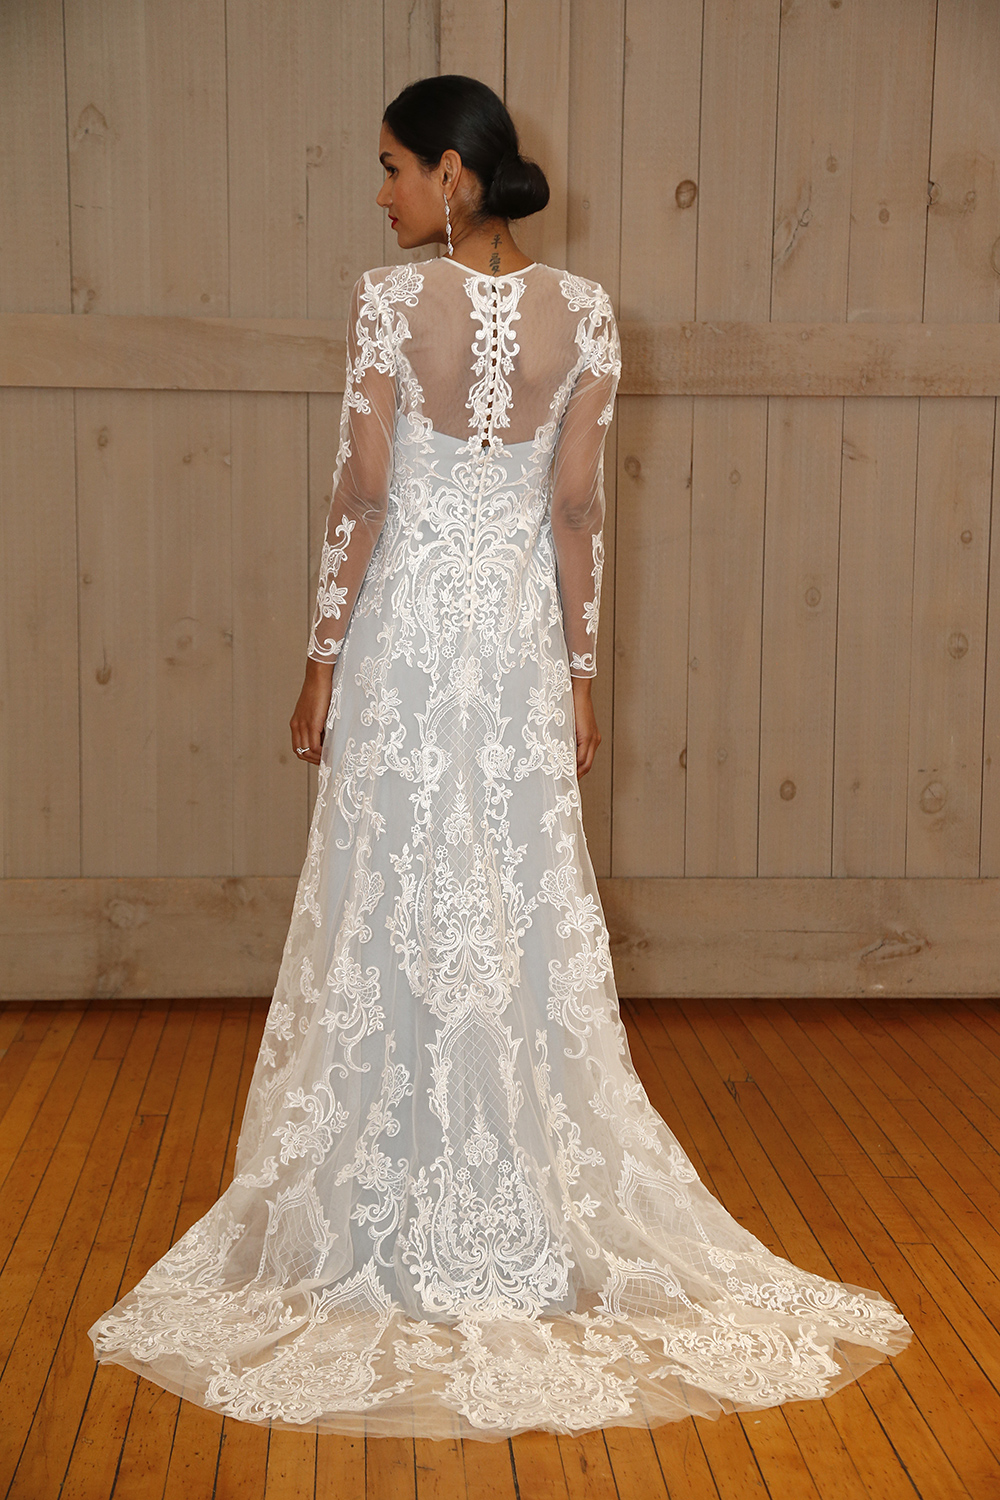 The most beautiful wedding dresses from bridal fashion week the davids bridal lace wedding dress ombrellifo Gallery